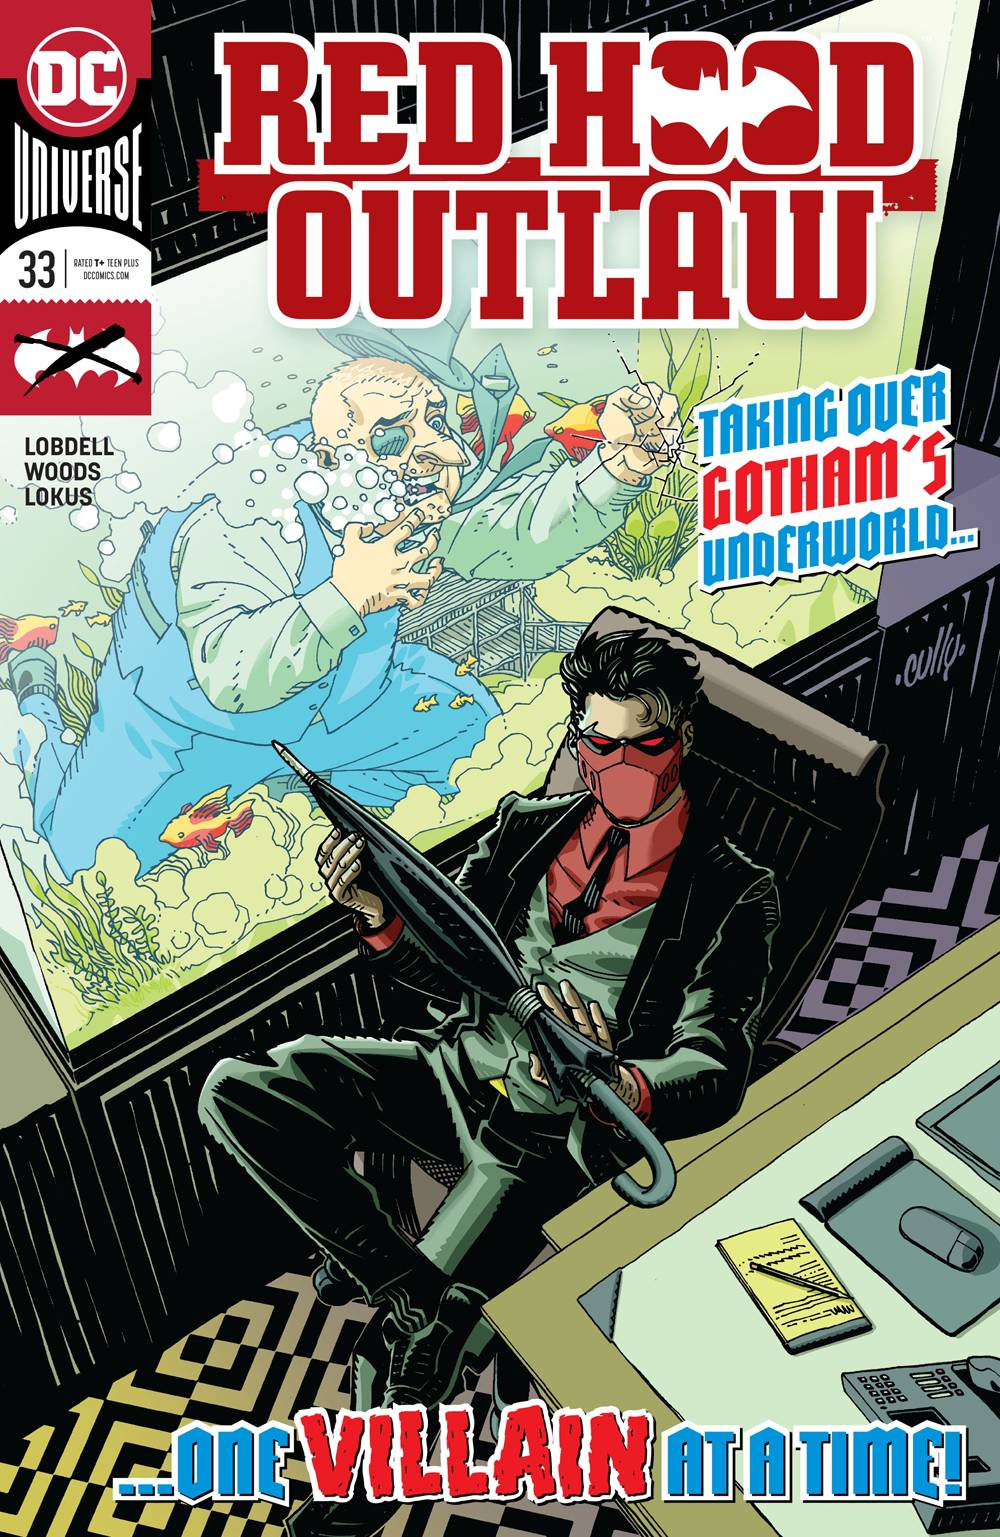 Red Hood Outlaw #33